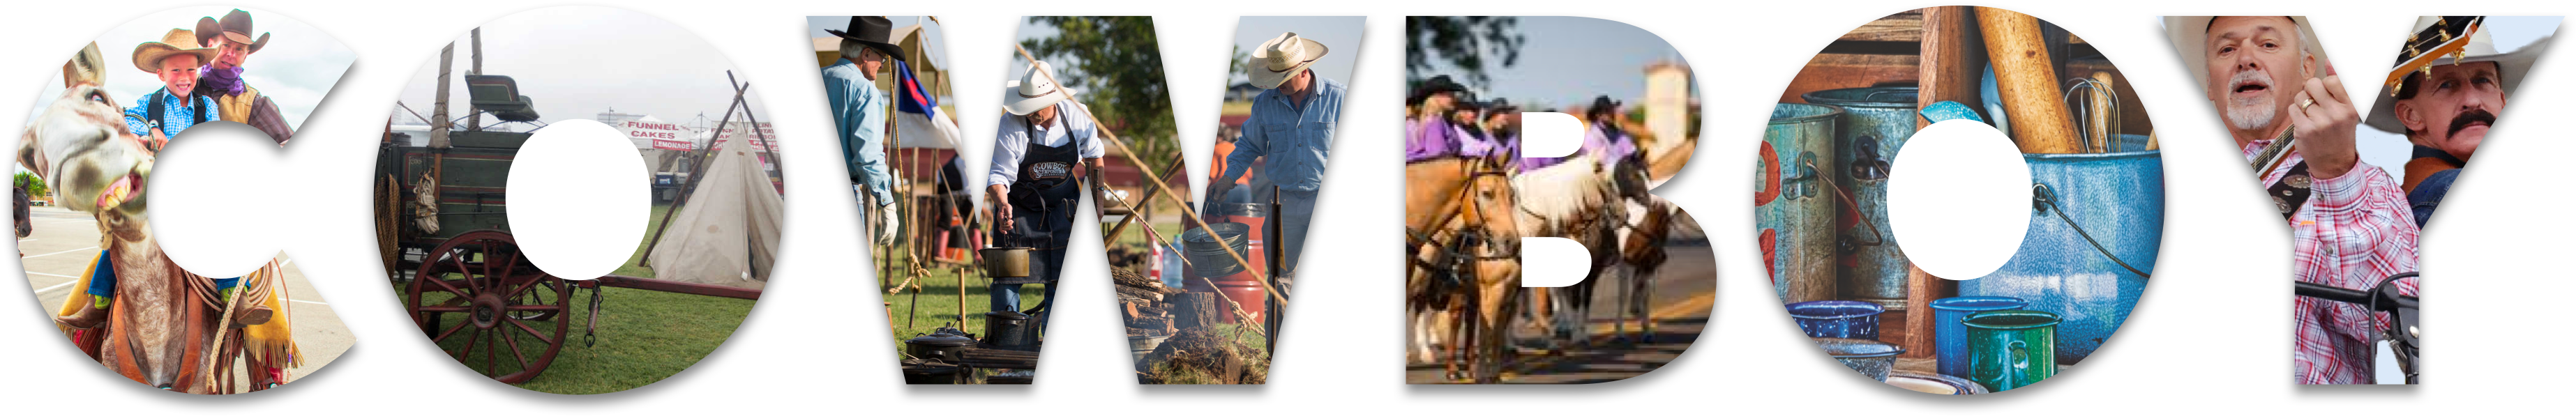 Annual Cowboys Symposium